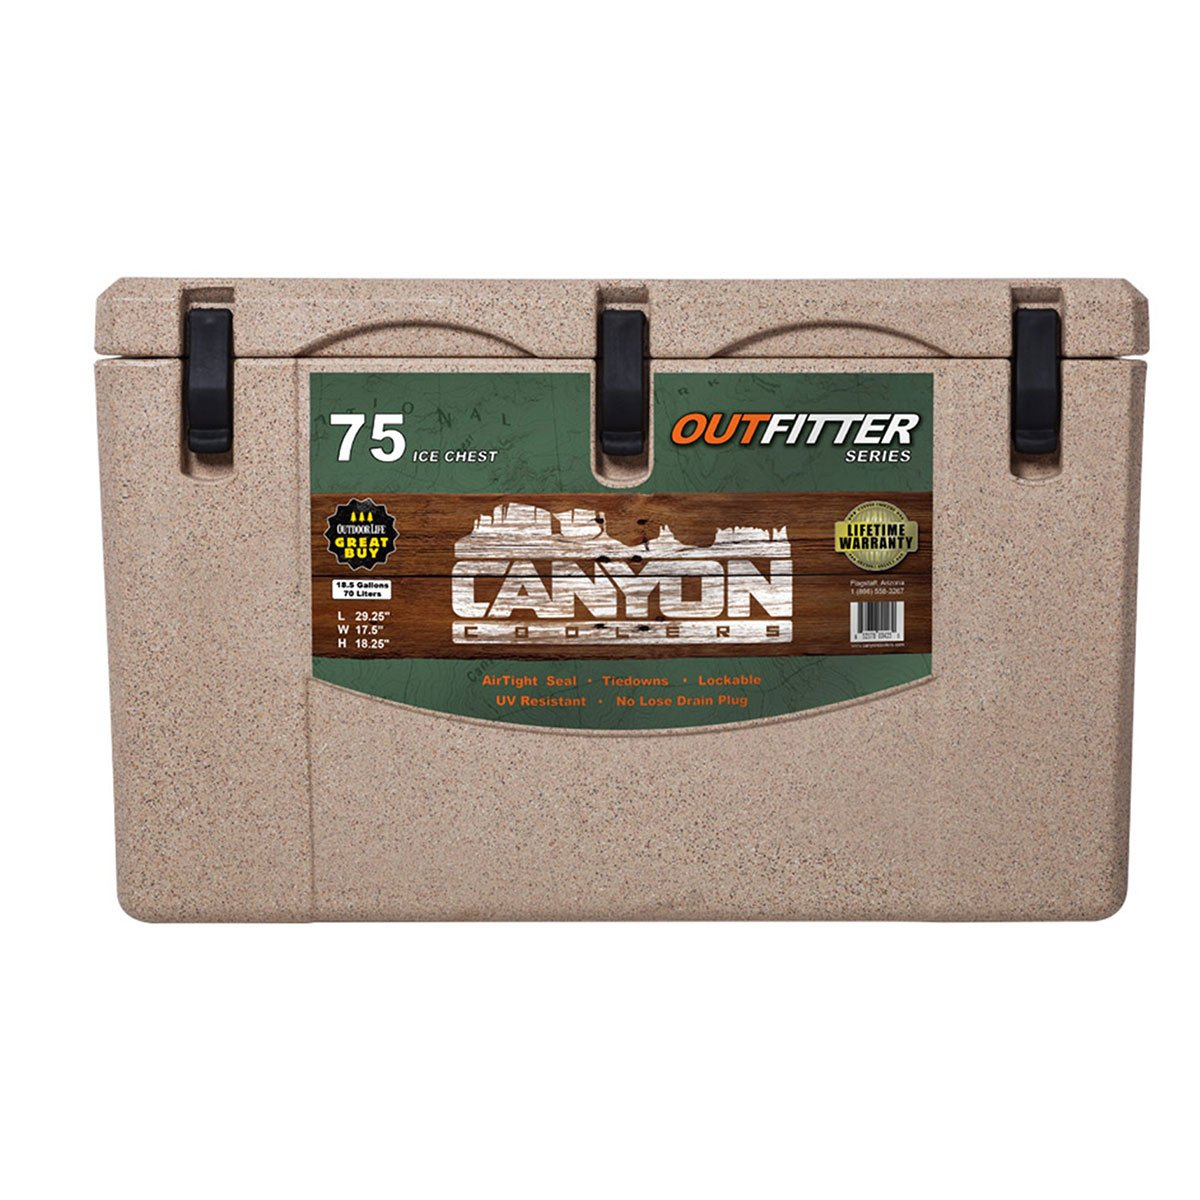 Canyon Outfitter 75 sandstone